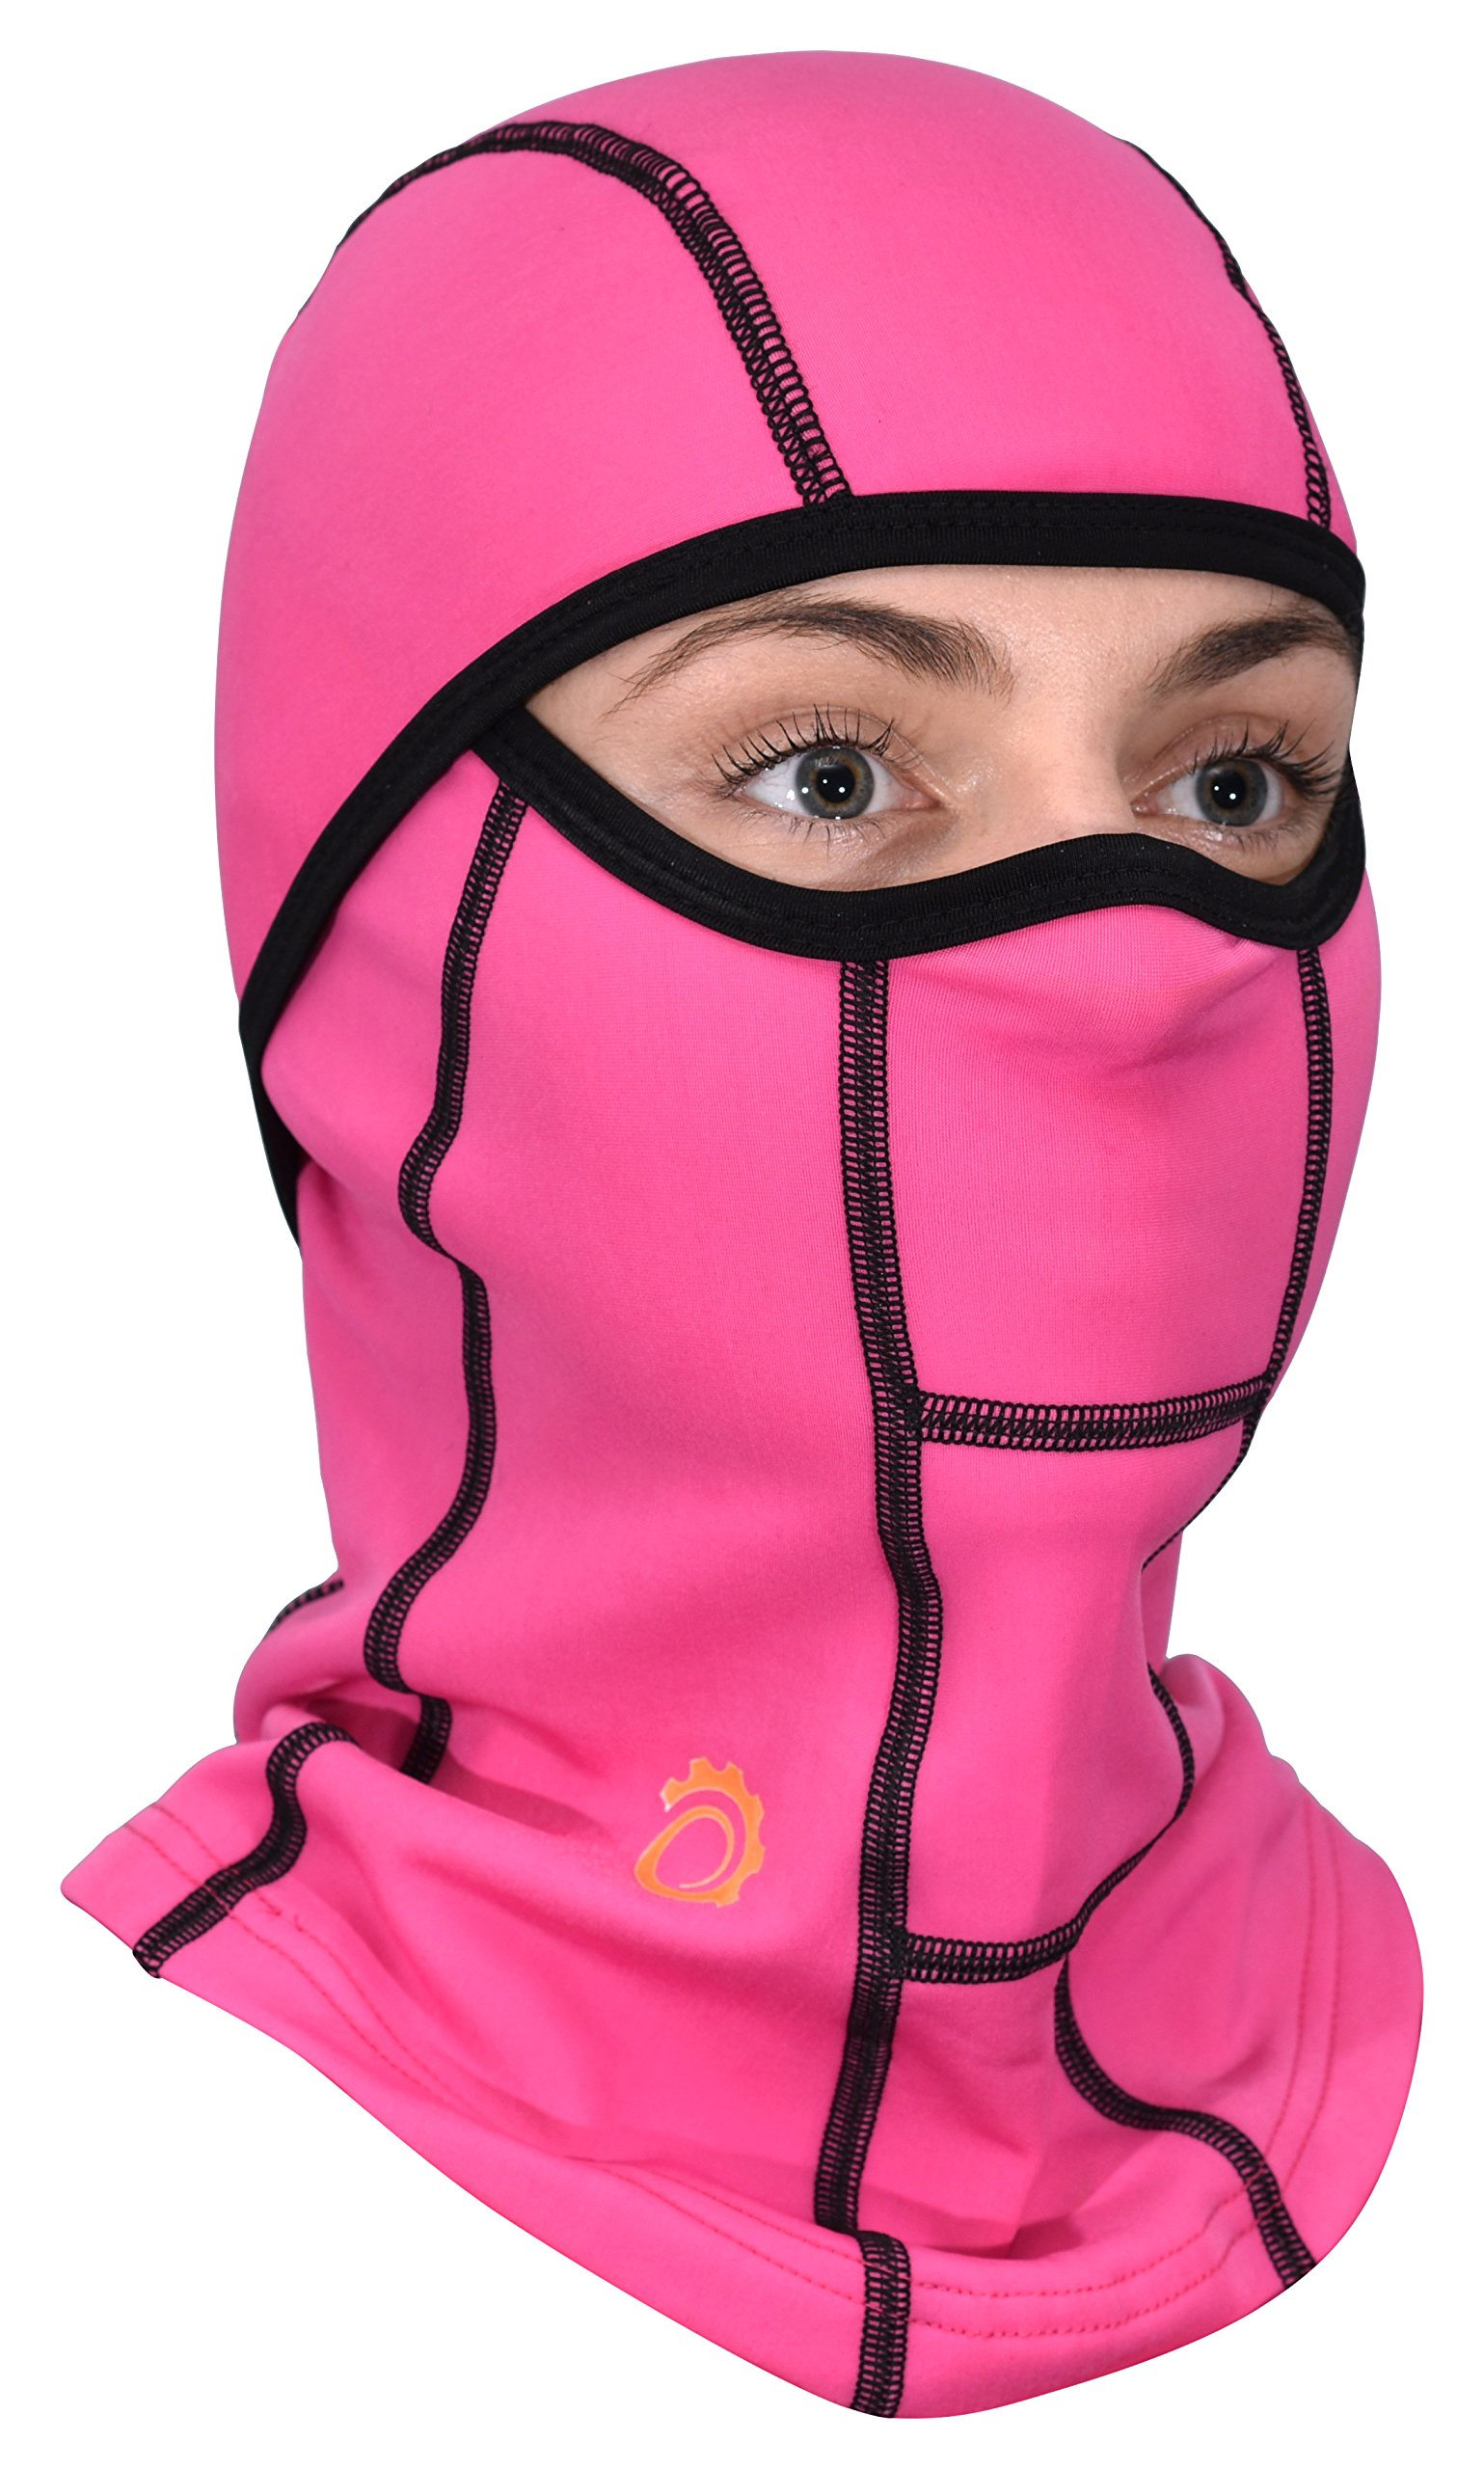 Balaclava Ski Mask and FREE Gift, GearTOP Sports and Motorcycle Biking Accessories #1 Top Pink Balaclava Bicycle Helmet Liner